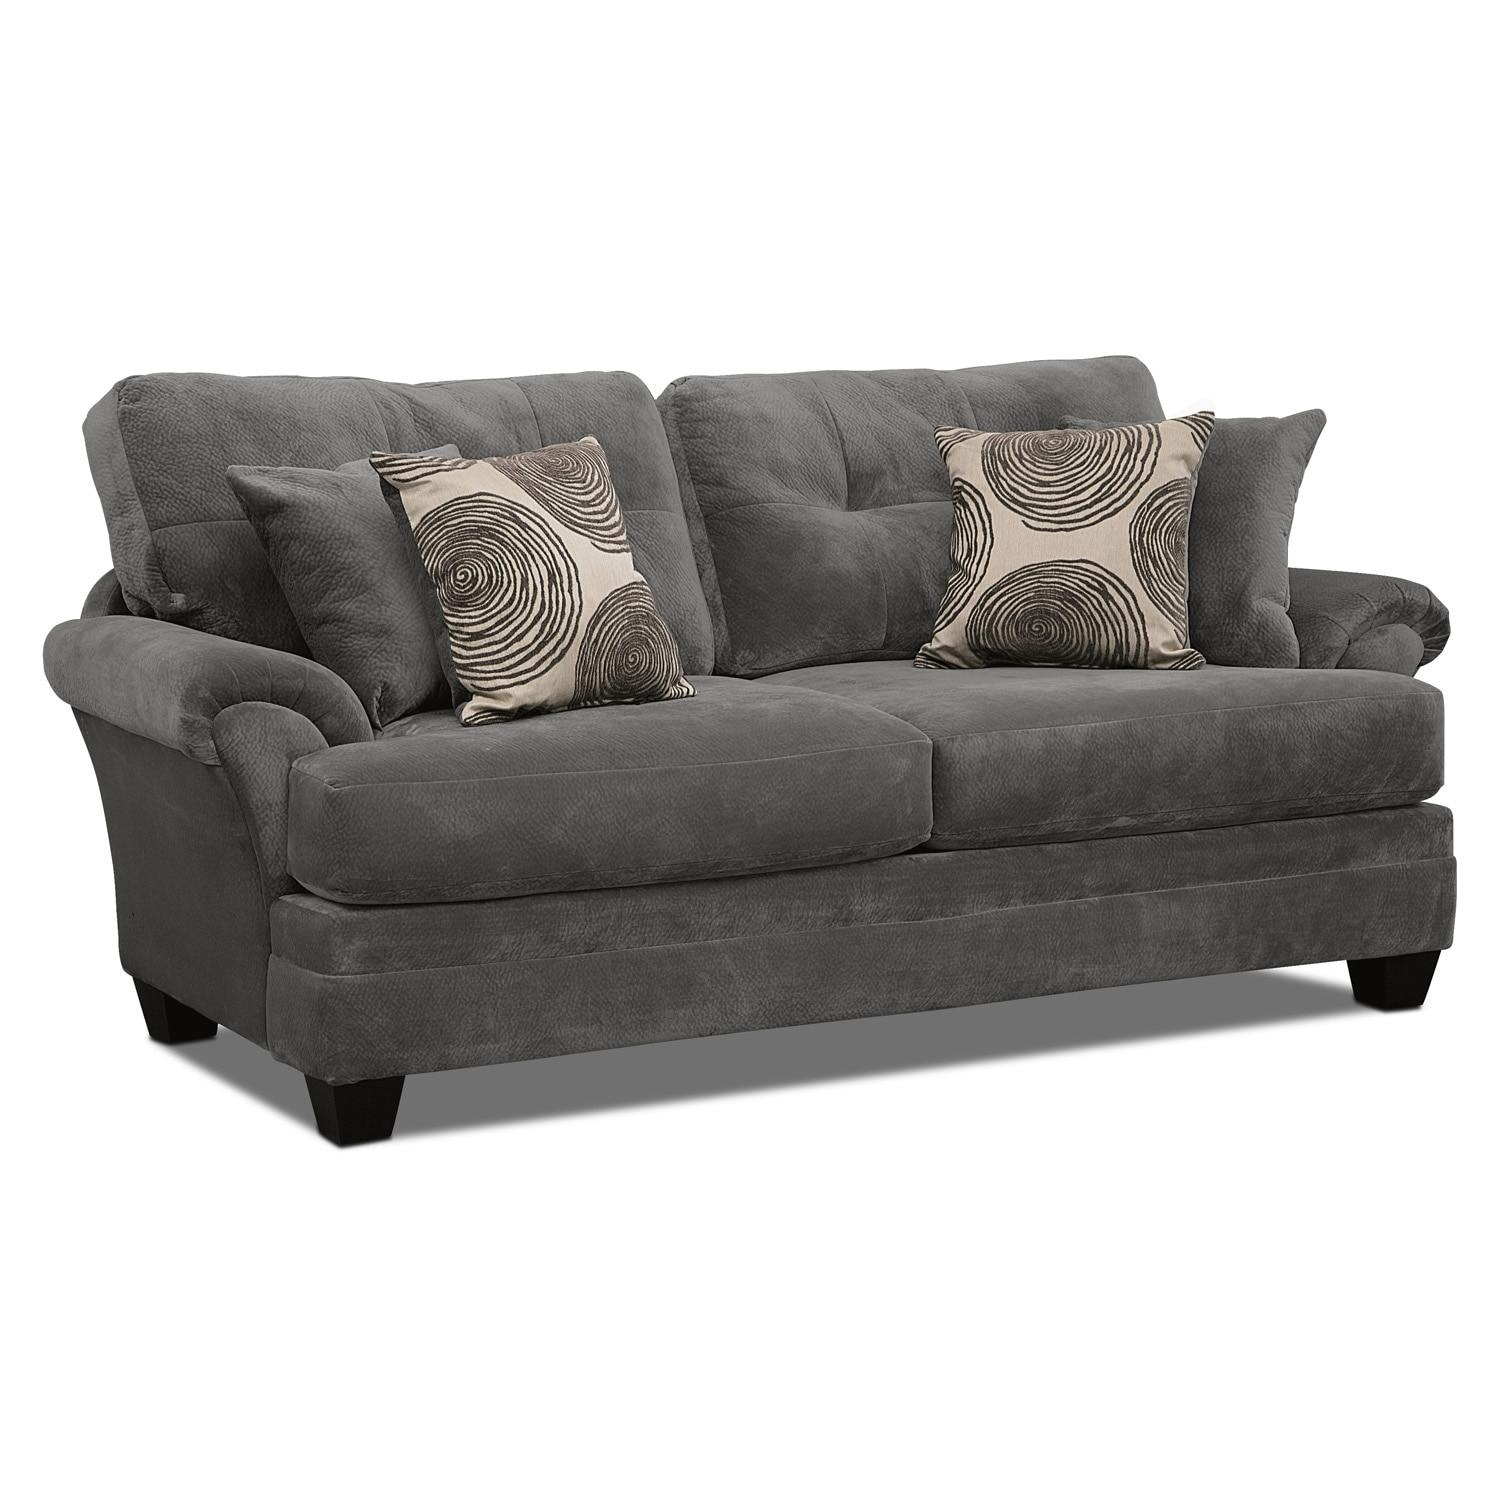 Cordelle Sofa, Loveseat And Swivel Chair Set – Gray | Value City Pertaining To Swivel Sofa Chairs (Image 3 of 20)